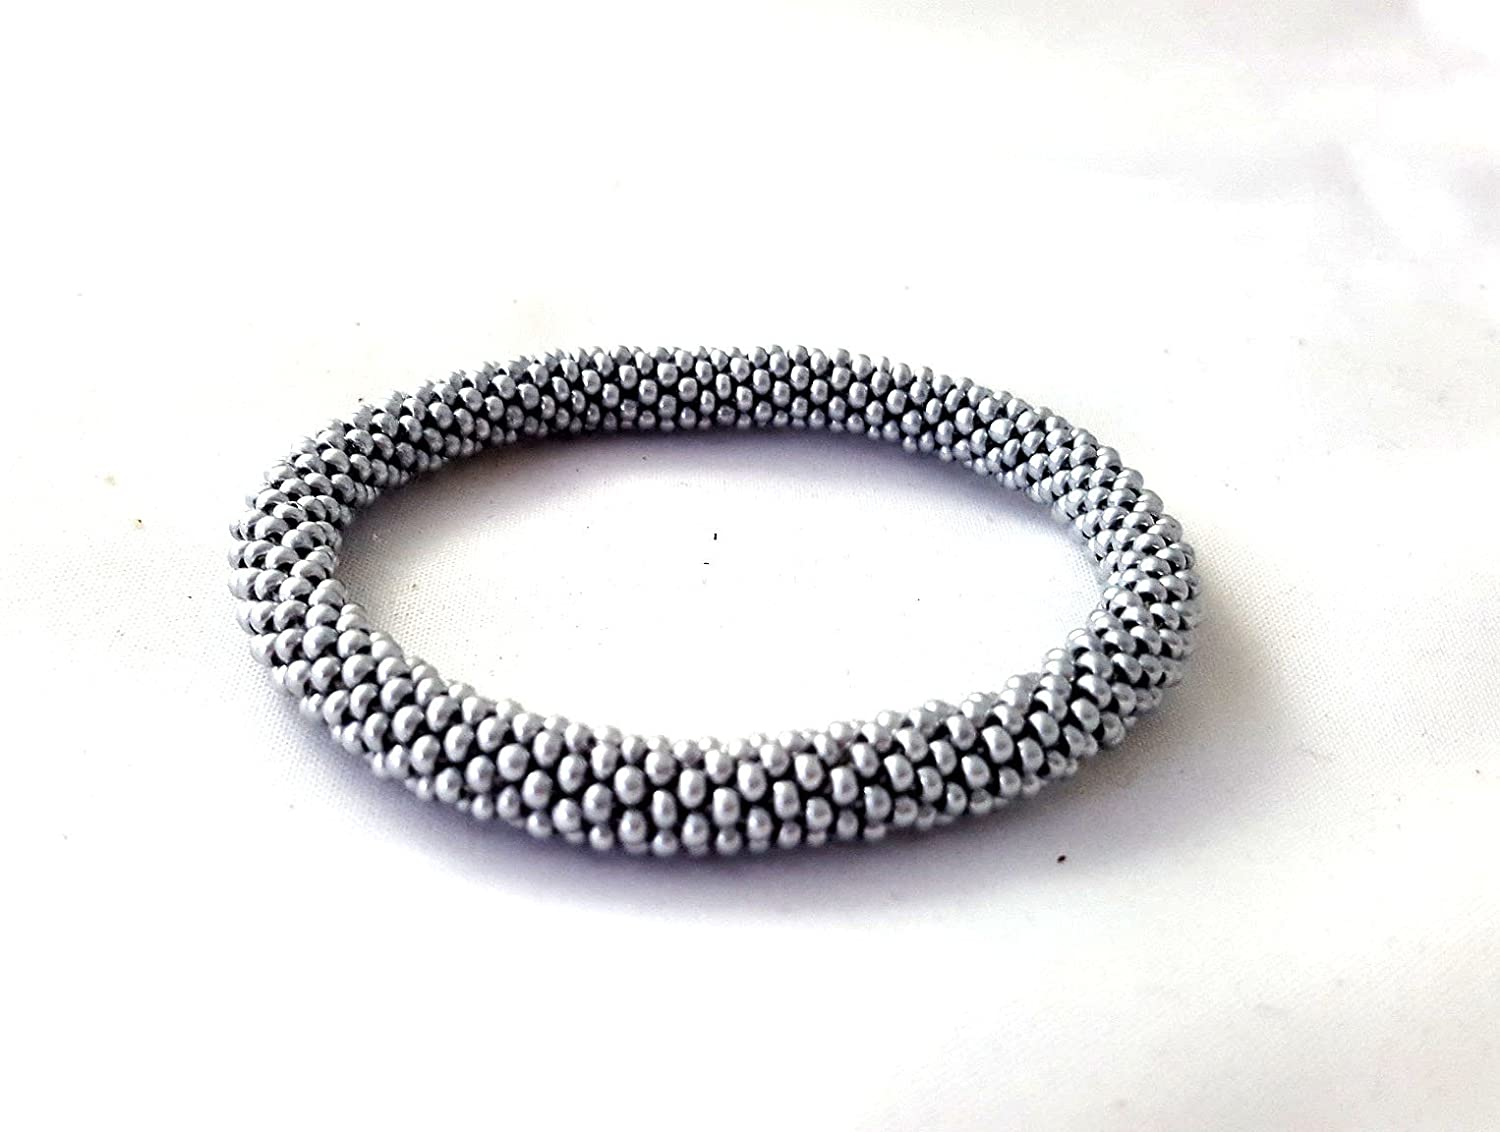 Silver Roll On Bracelet Nepal Native Bangle Beaded Wristband